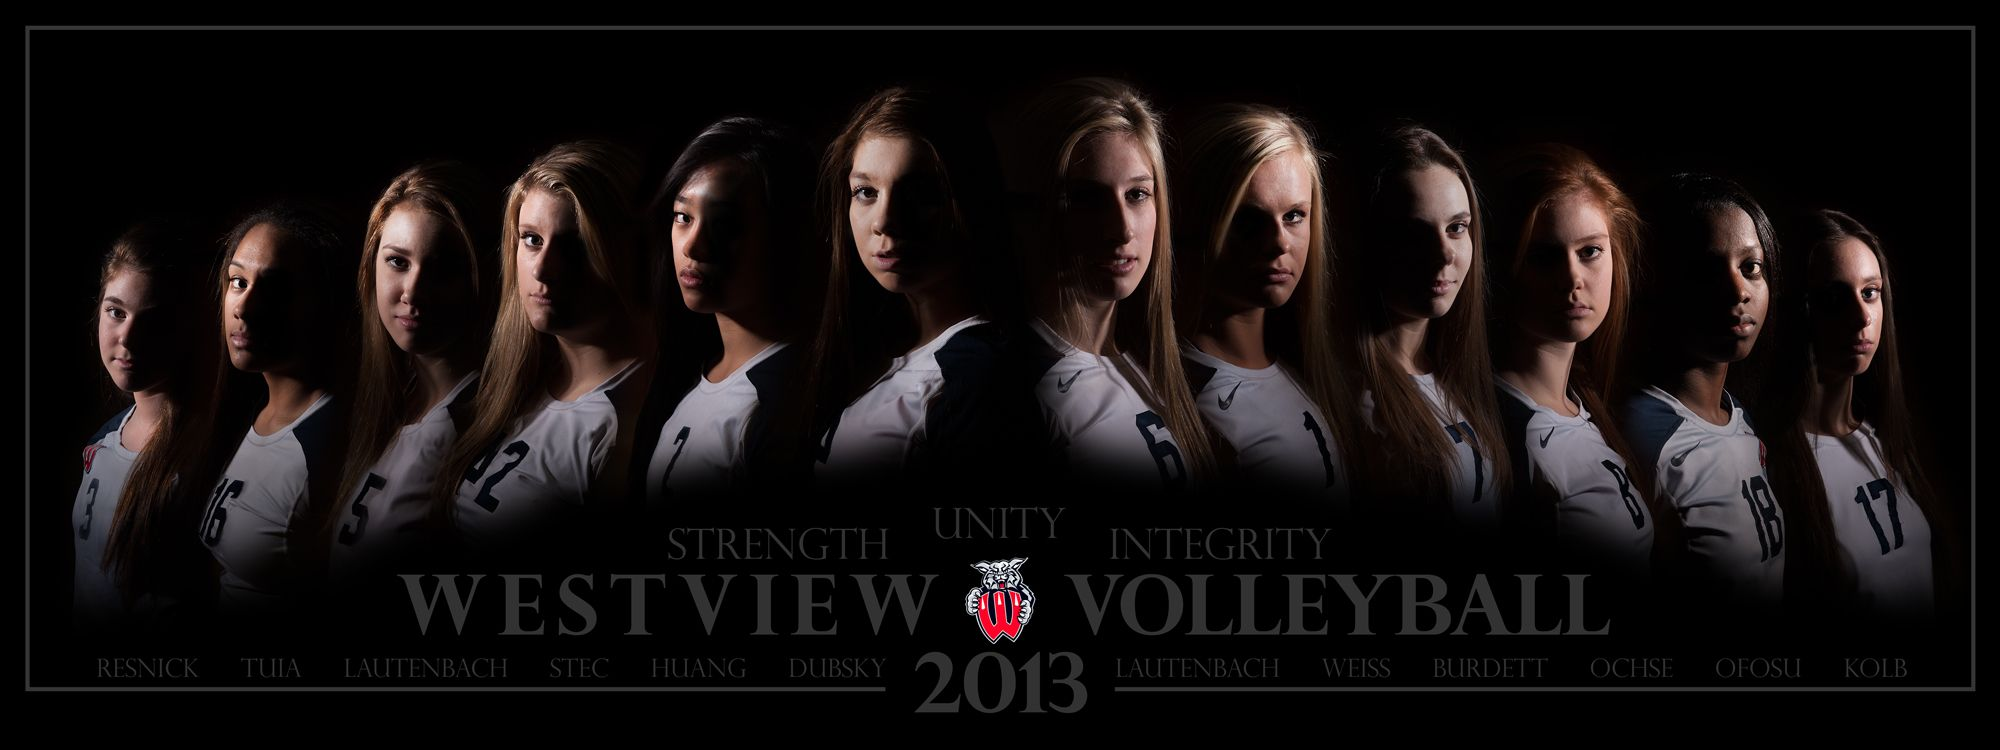 Ncaa Volleyball Ncaavolleyball Twitter With Images Volleyball Photos Volleyball Team Photos Volleyball Pictures